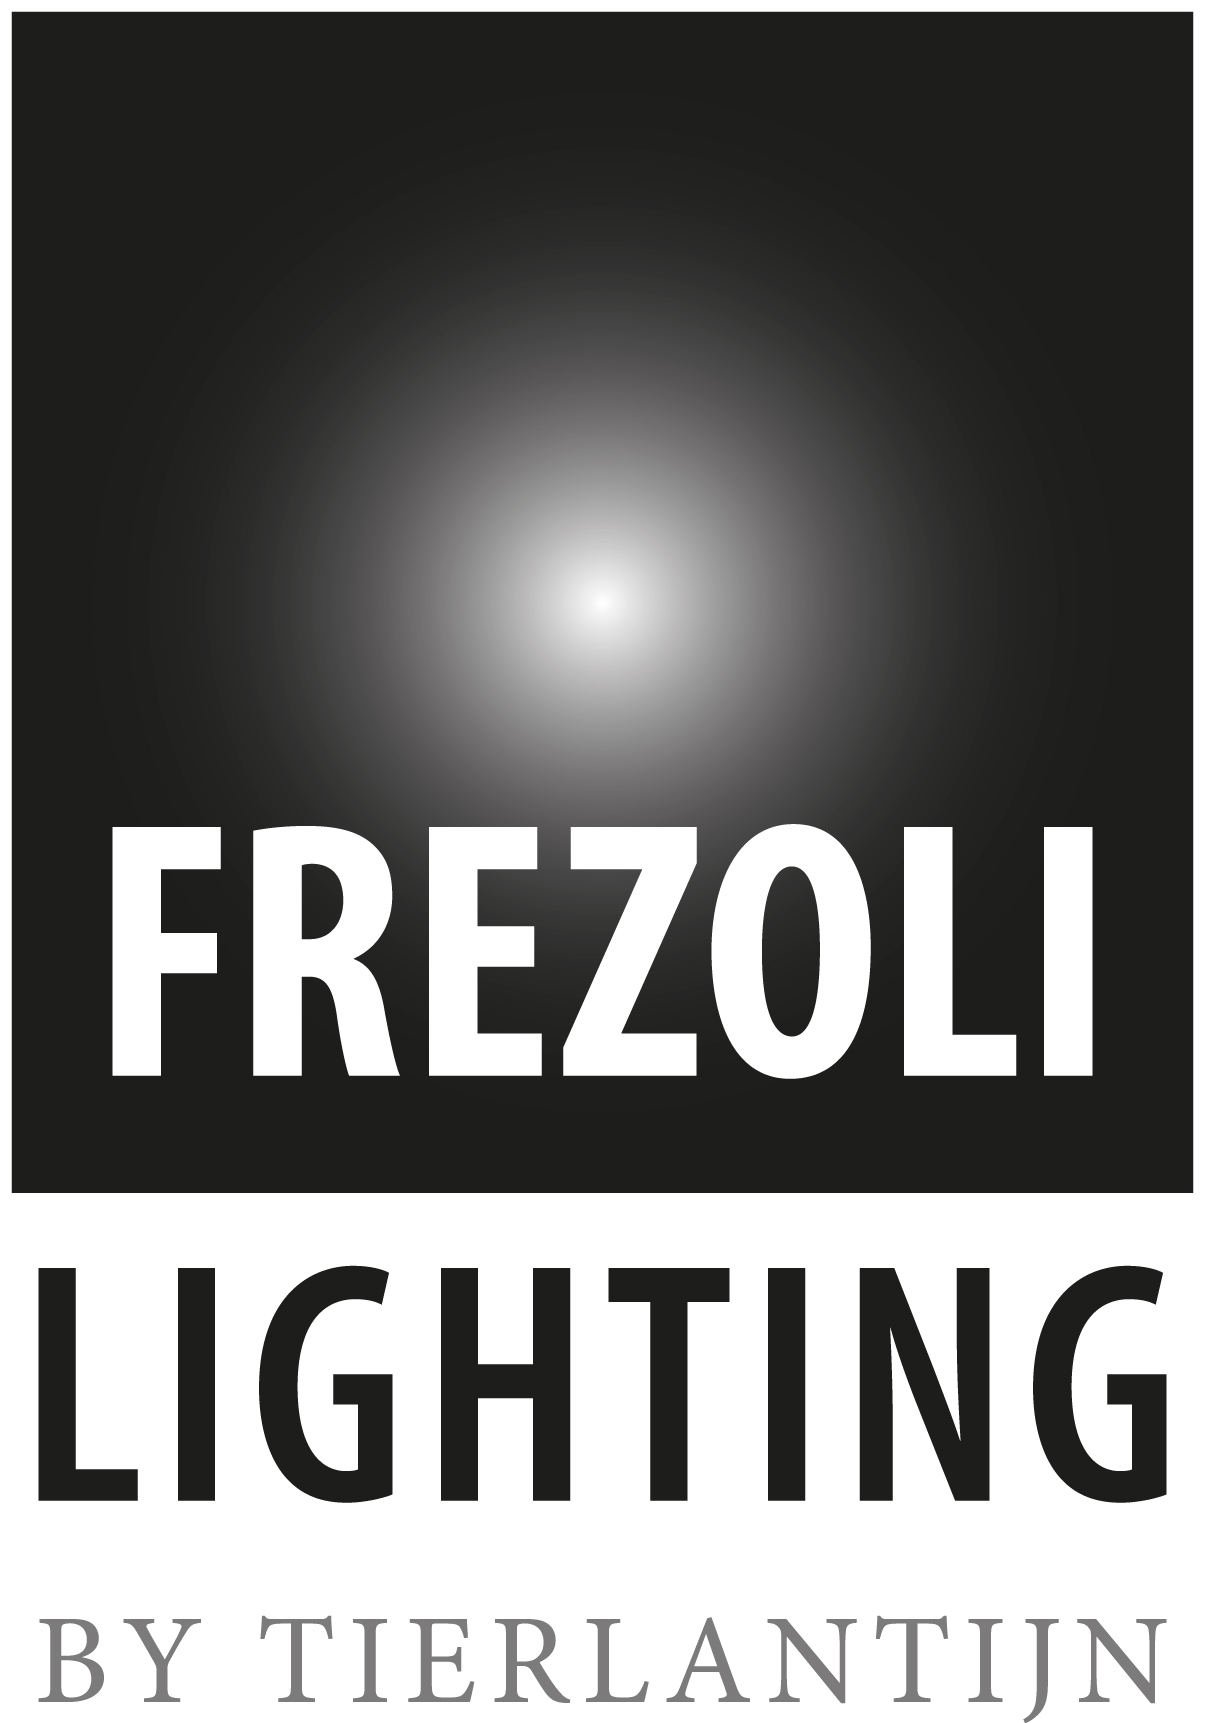 Frezoli Lighting